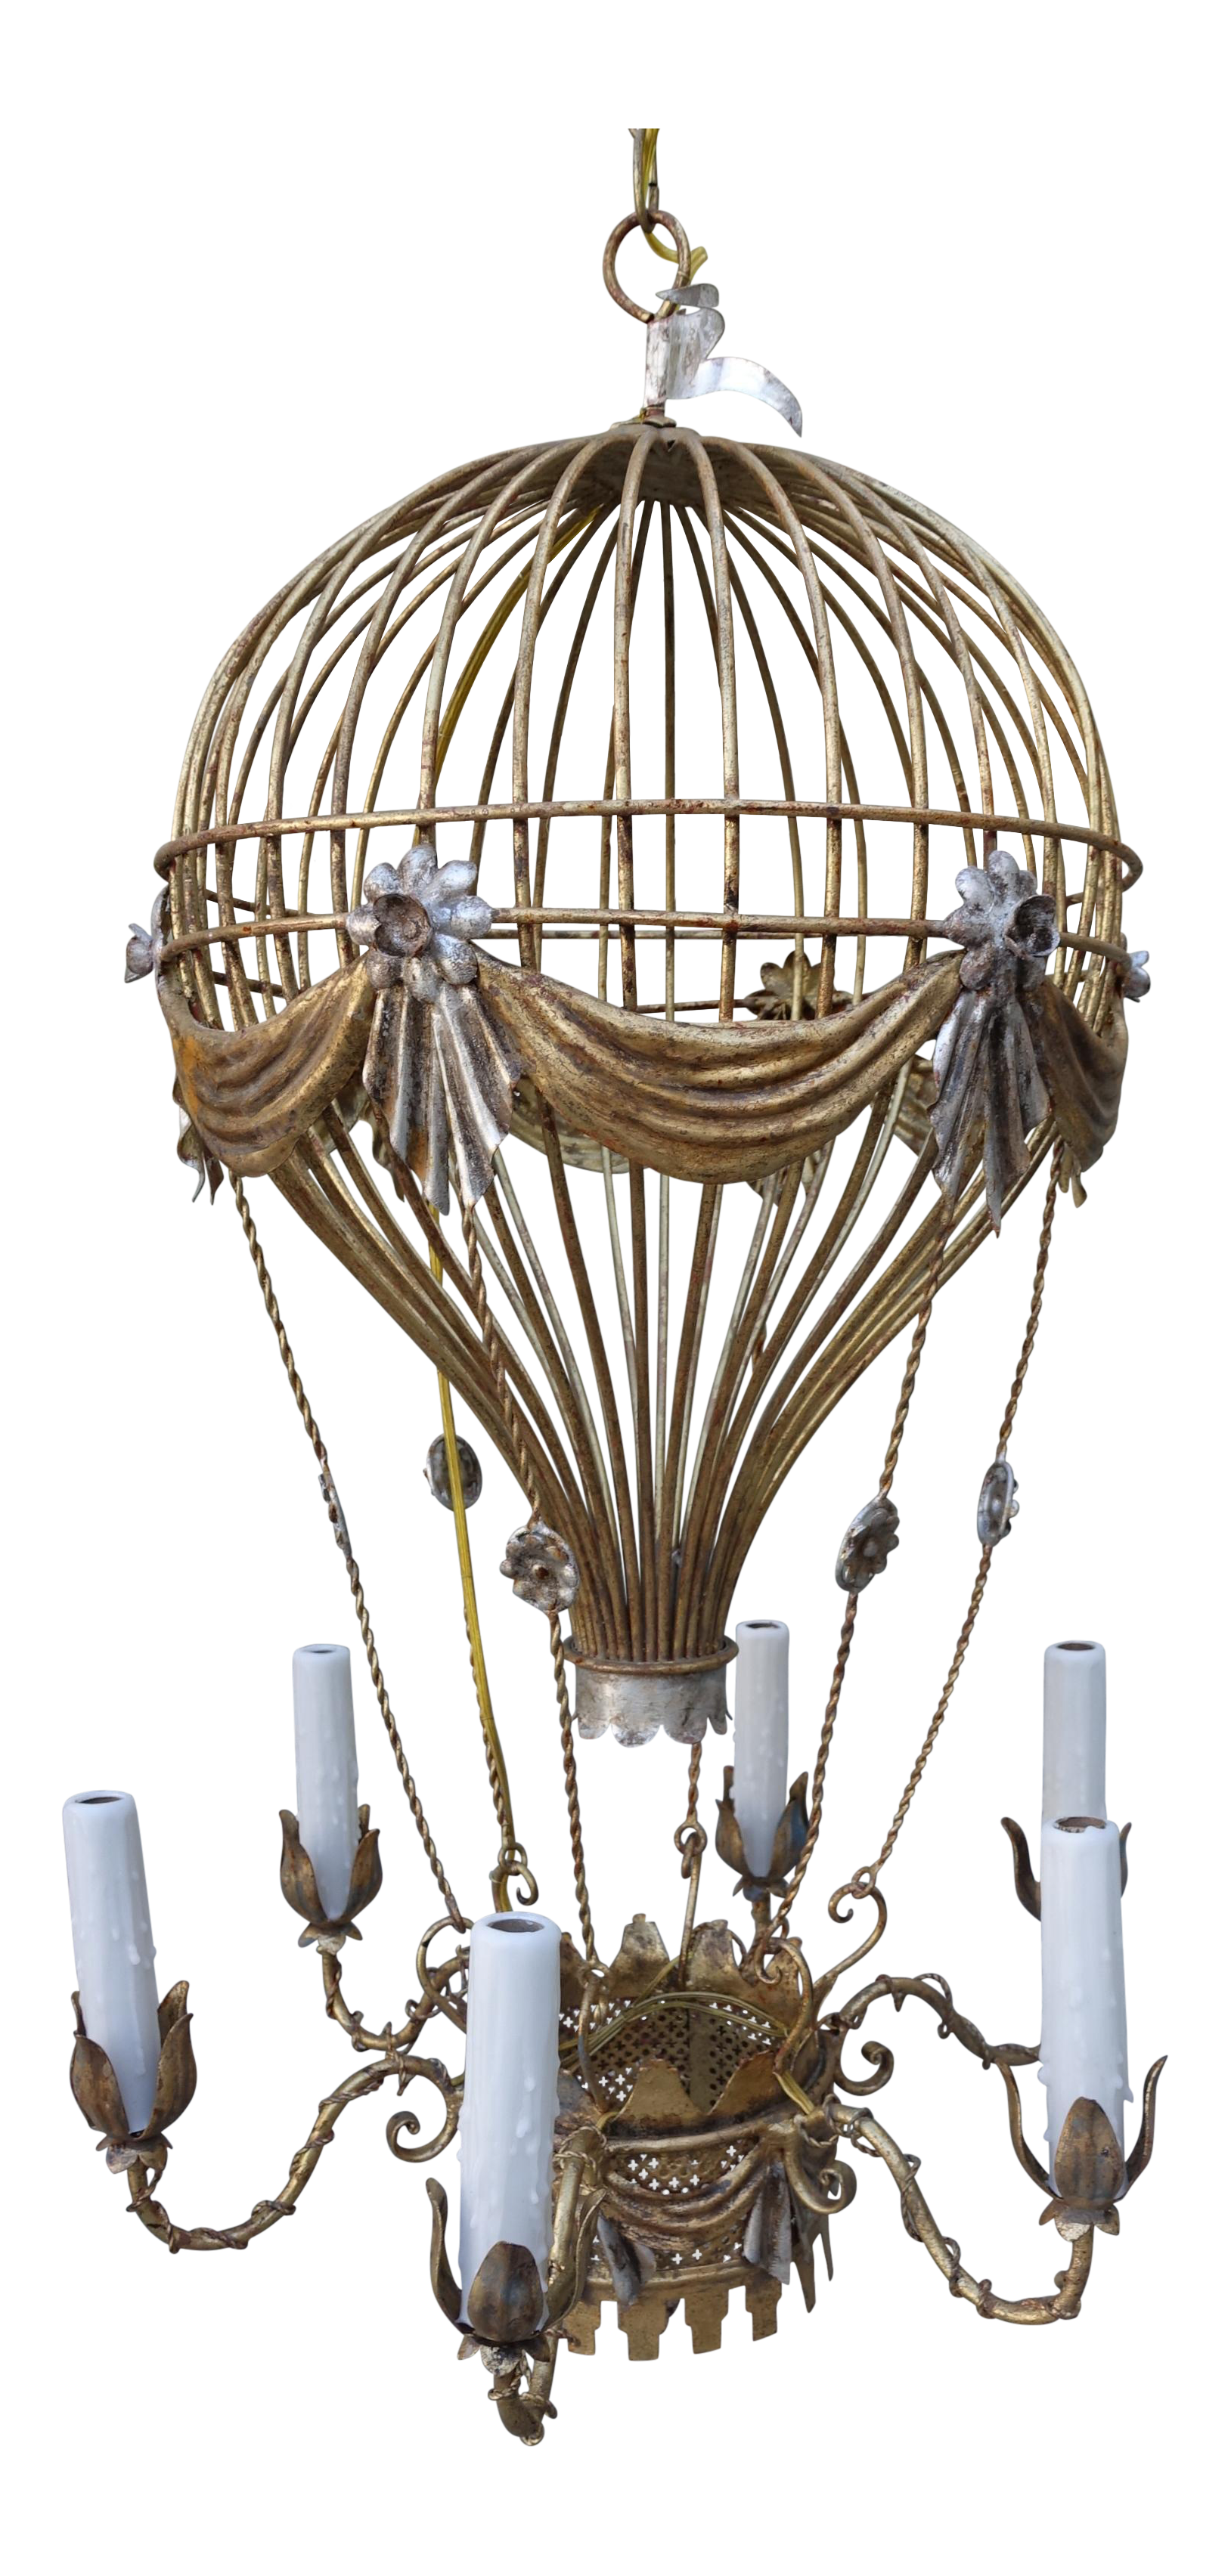 balloon hot file wikimedia lustre air re commons chandelier montgolfi wiki